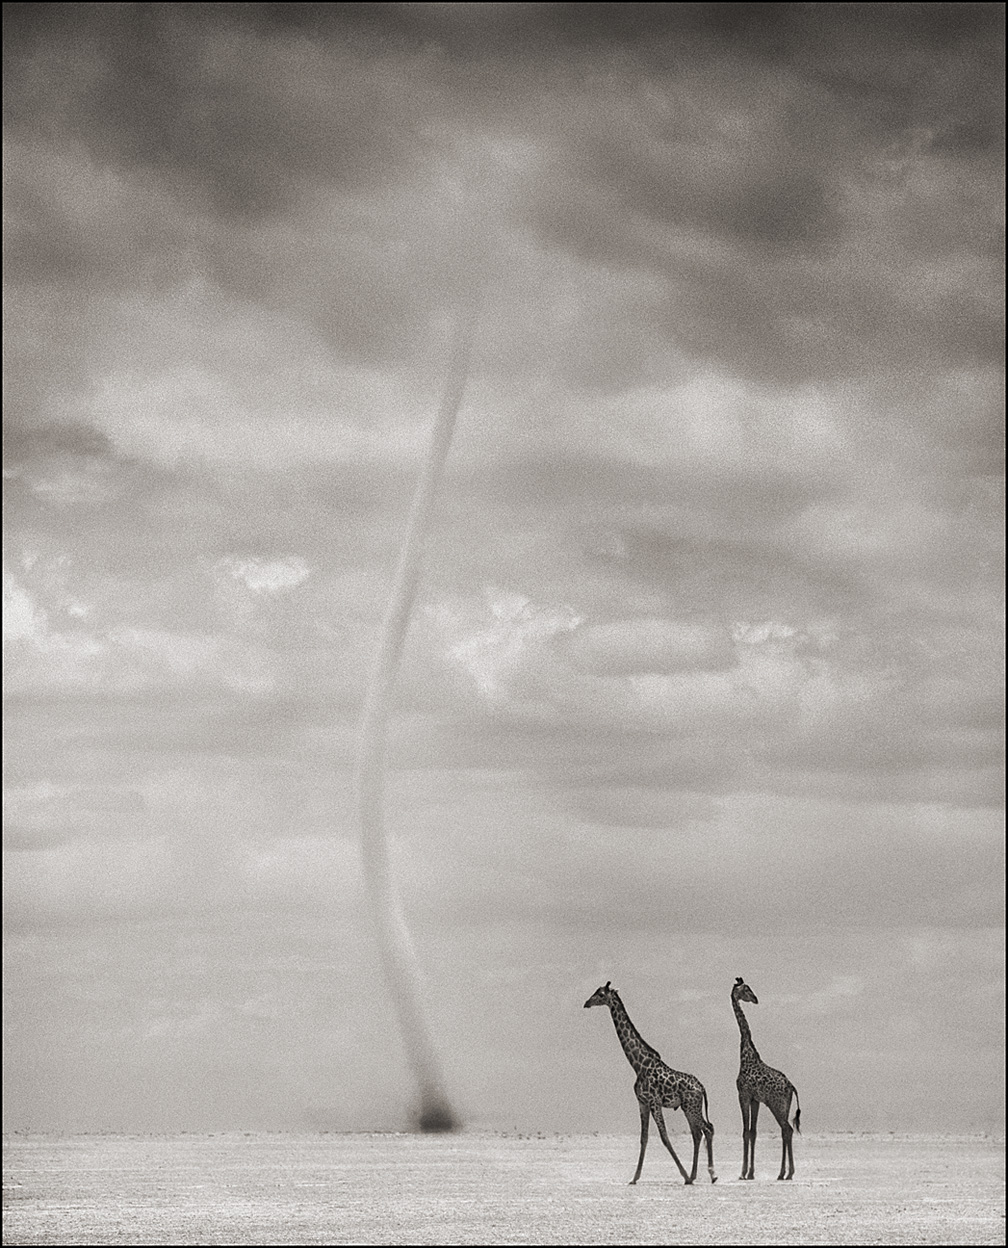 Giraffes with Dust Devil